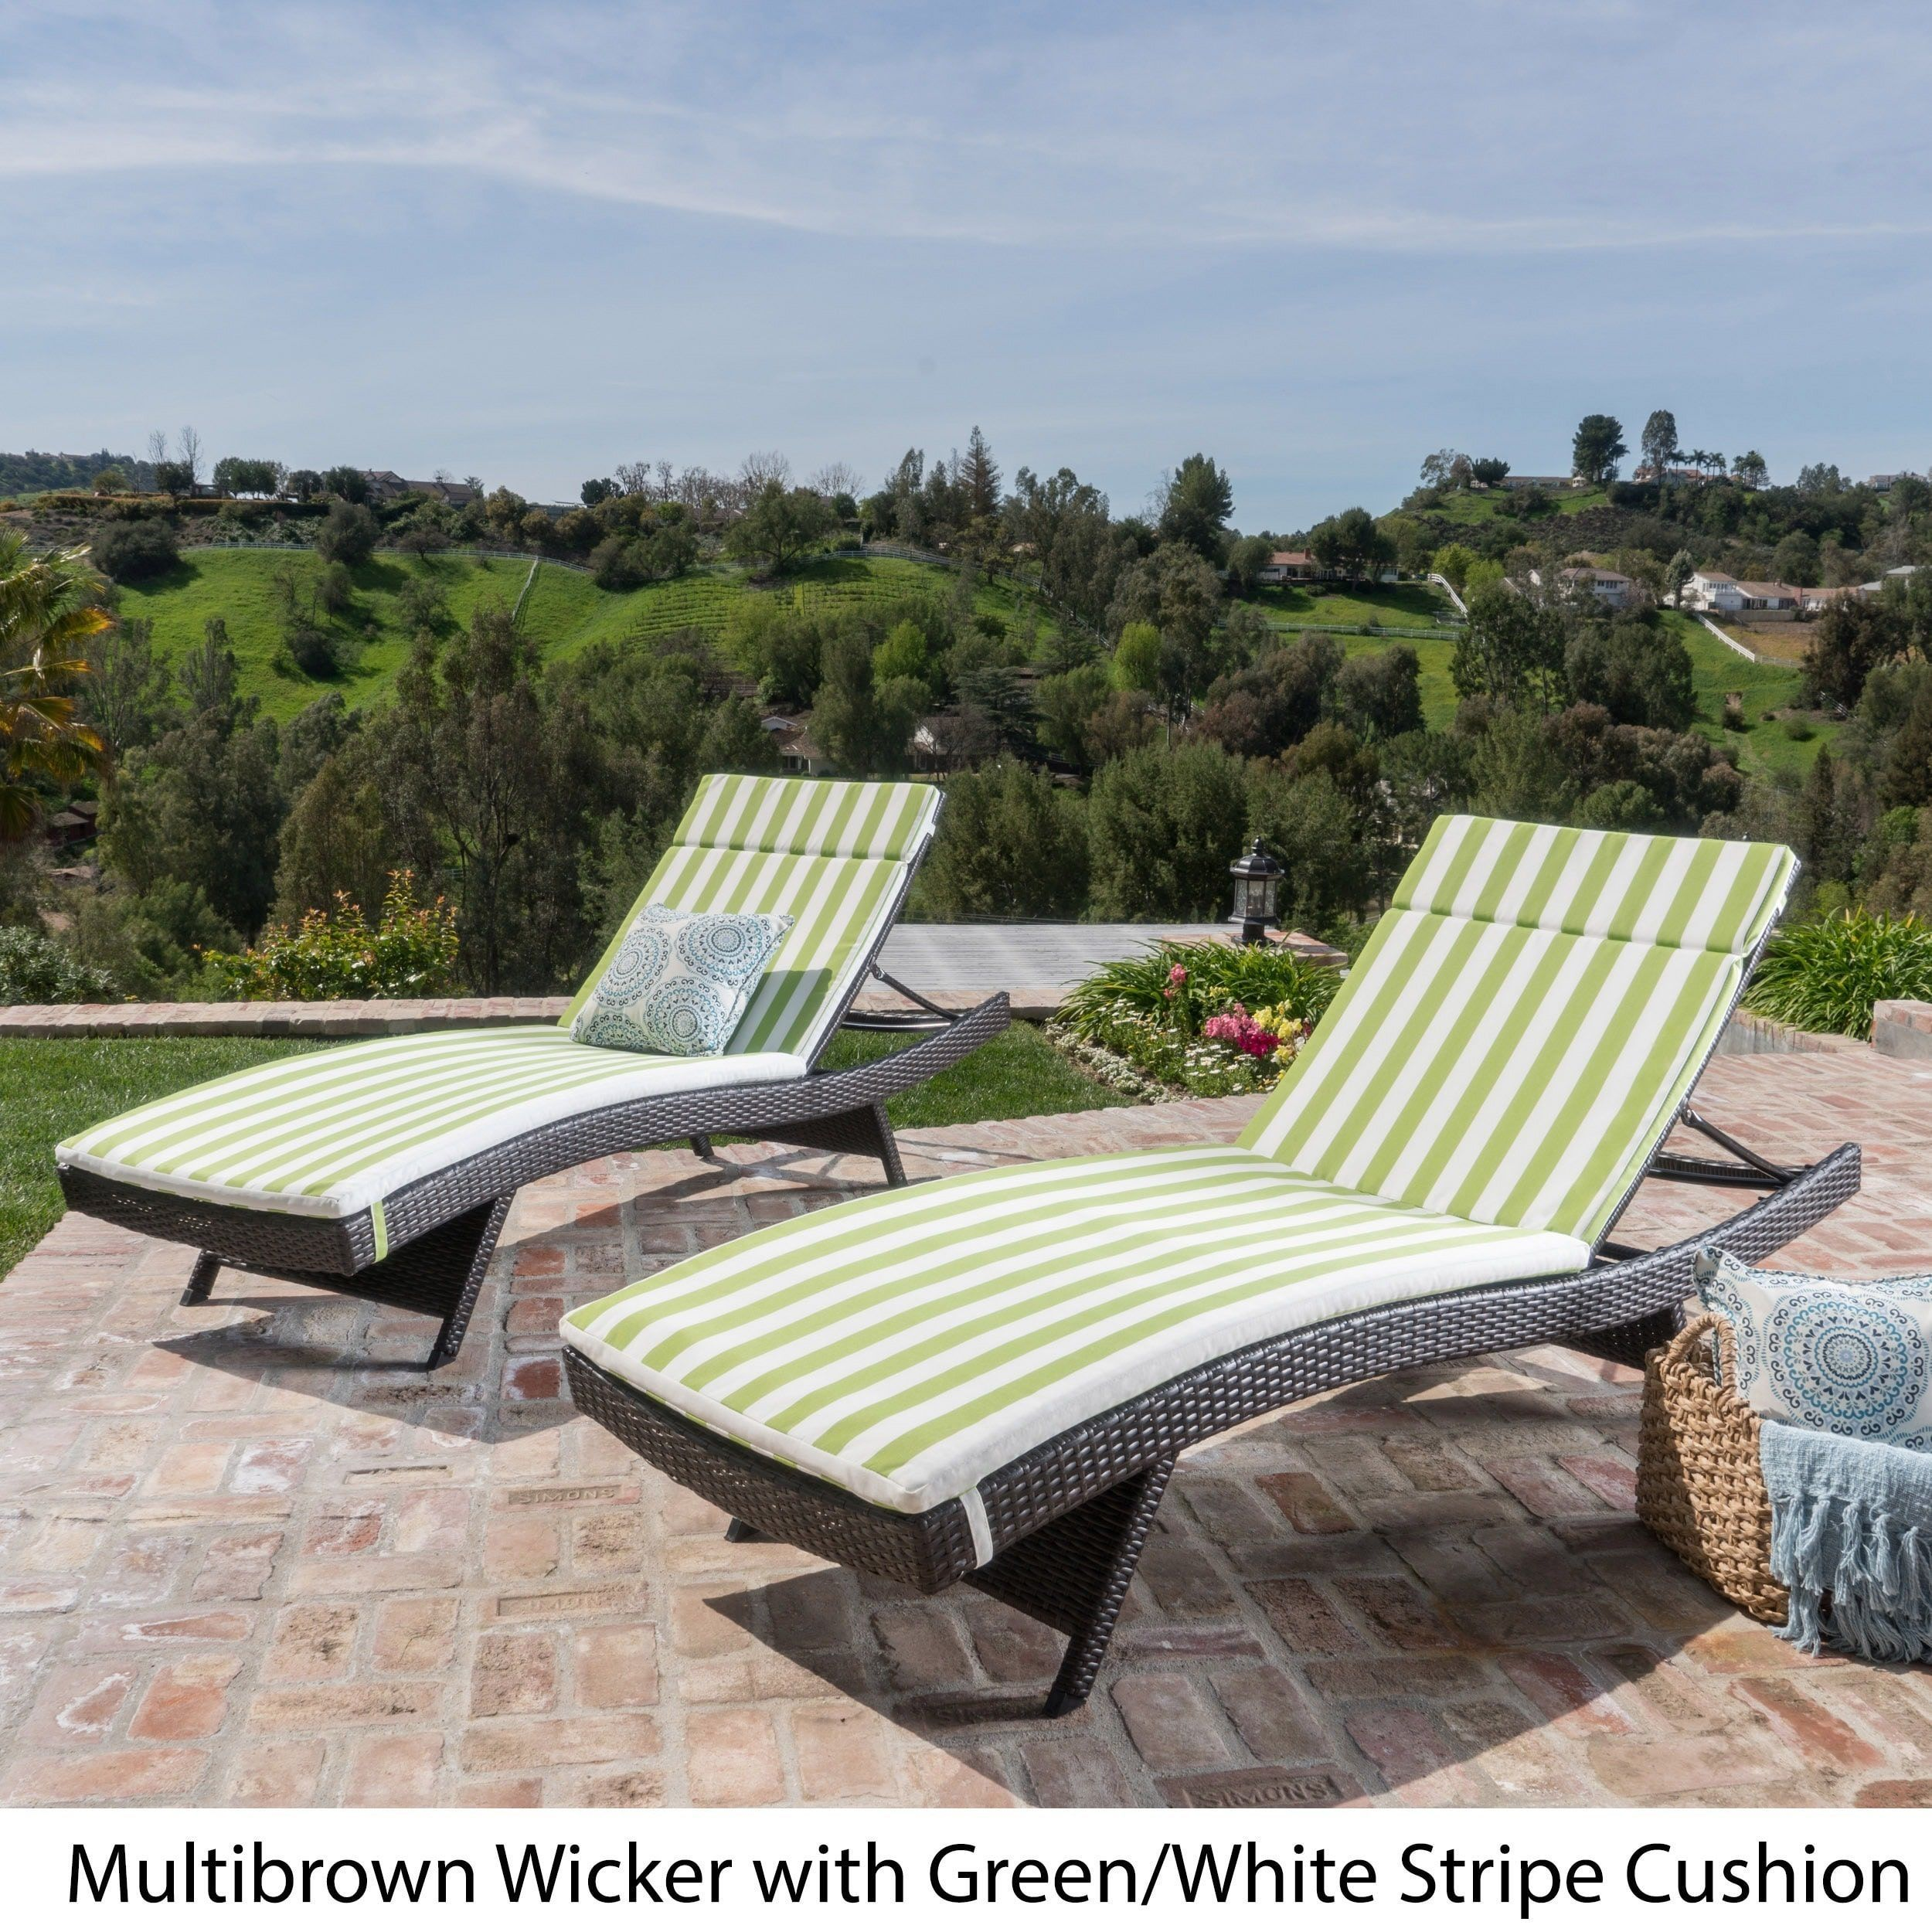 Toscana Outdoor Cushioned Wicker Chaise Lounge By Christopher Knight Home  (Set Of 2) (Brown Wicker   Bright Green Cushion), Patio Furniture  (Polyester)